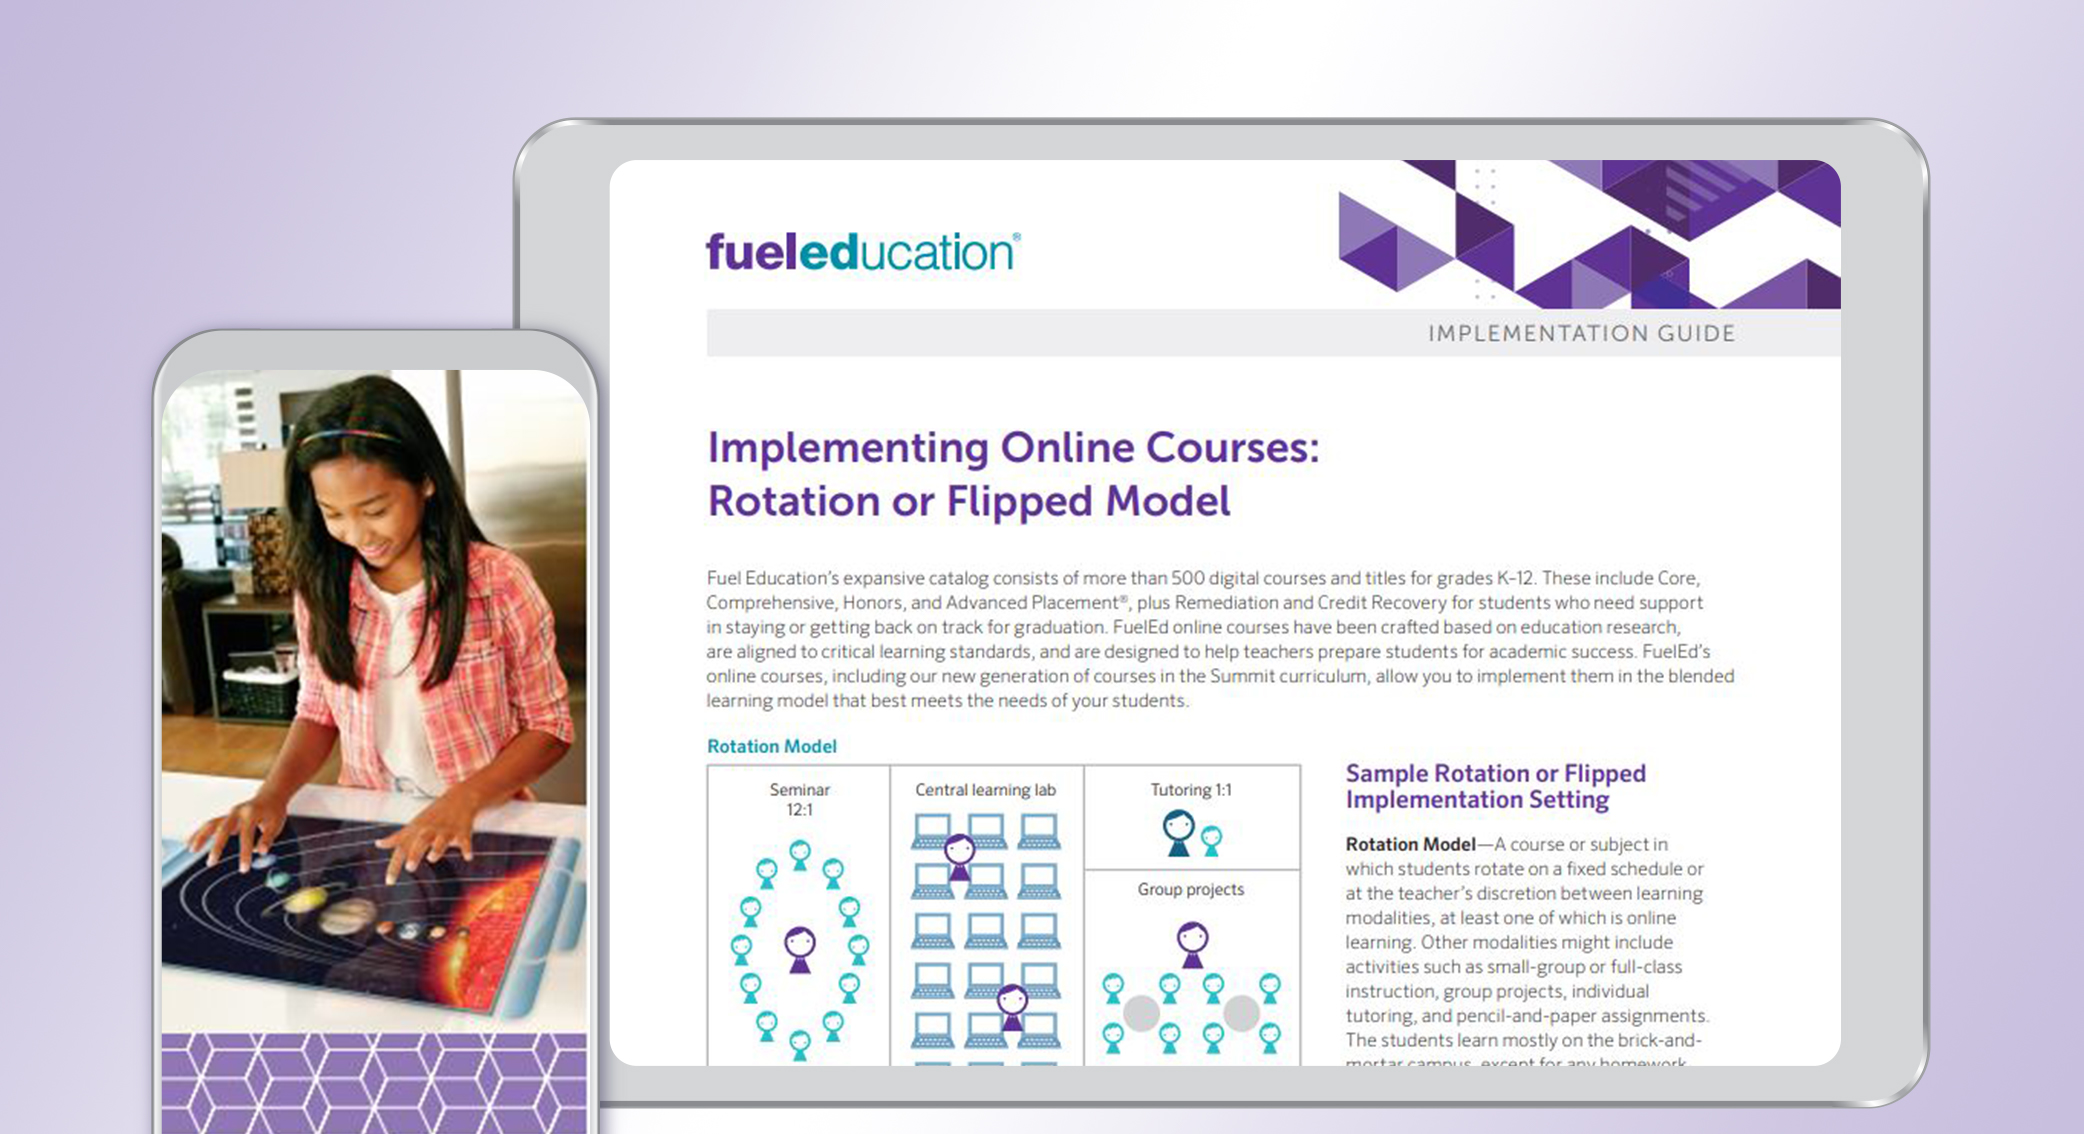 Rotation or Flipped Model Program Implementation Guide